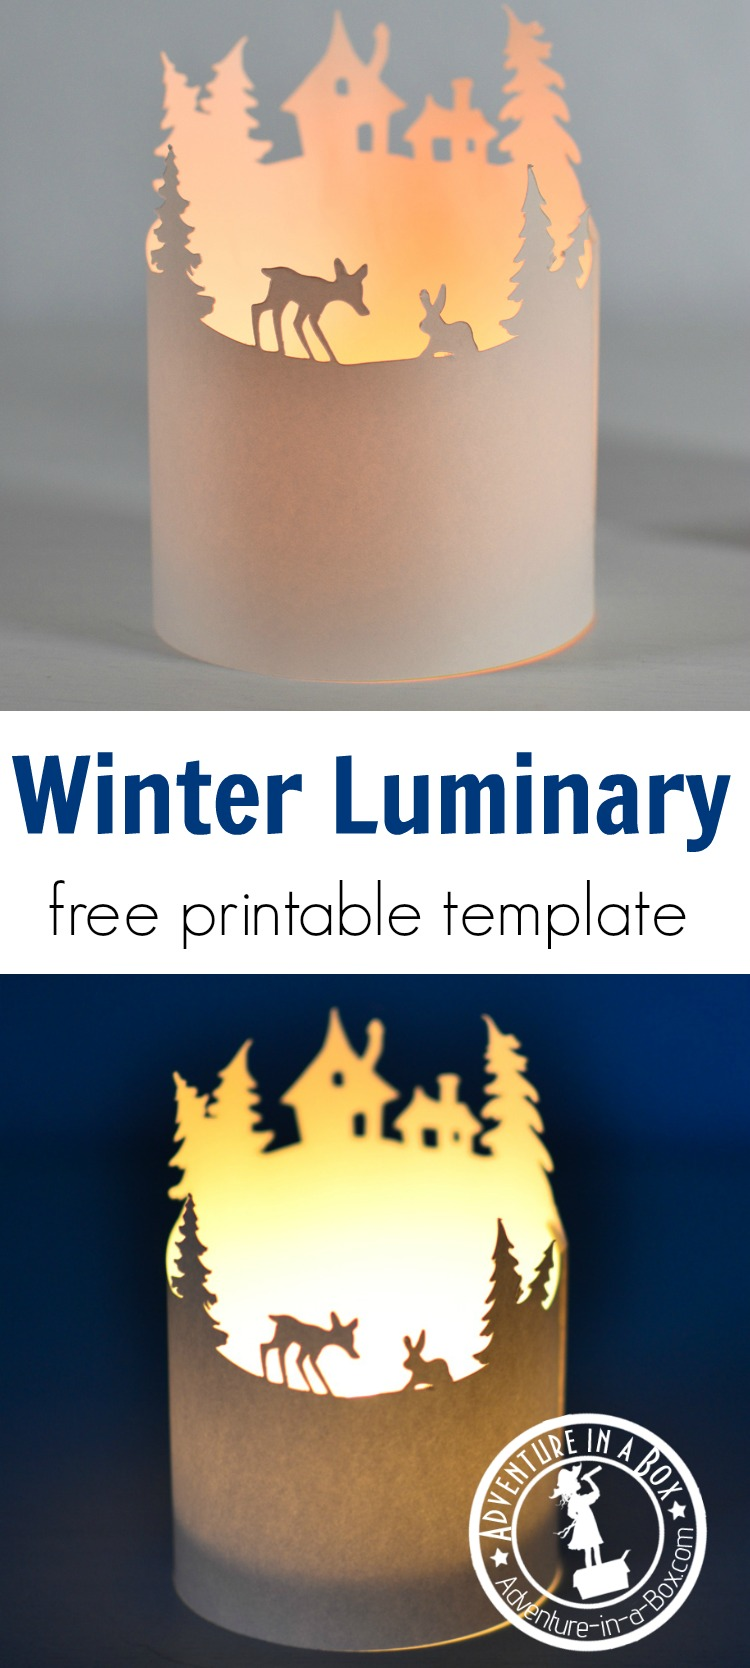 Make a handmade winter luminary with a free printable template. A quick and simple craft for a Christmas break.